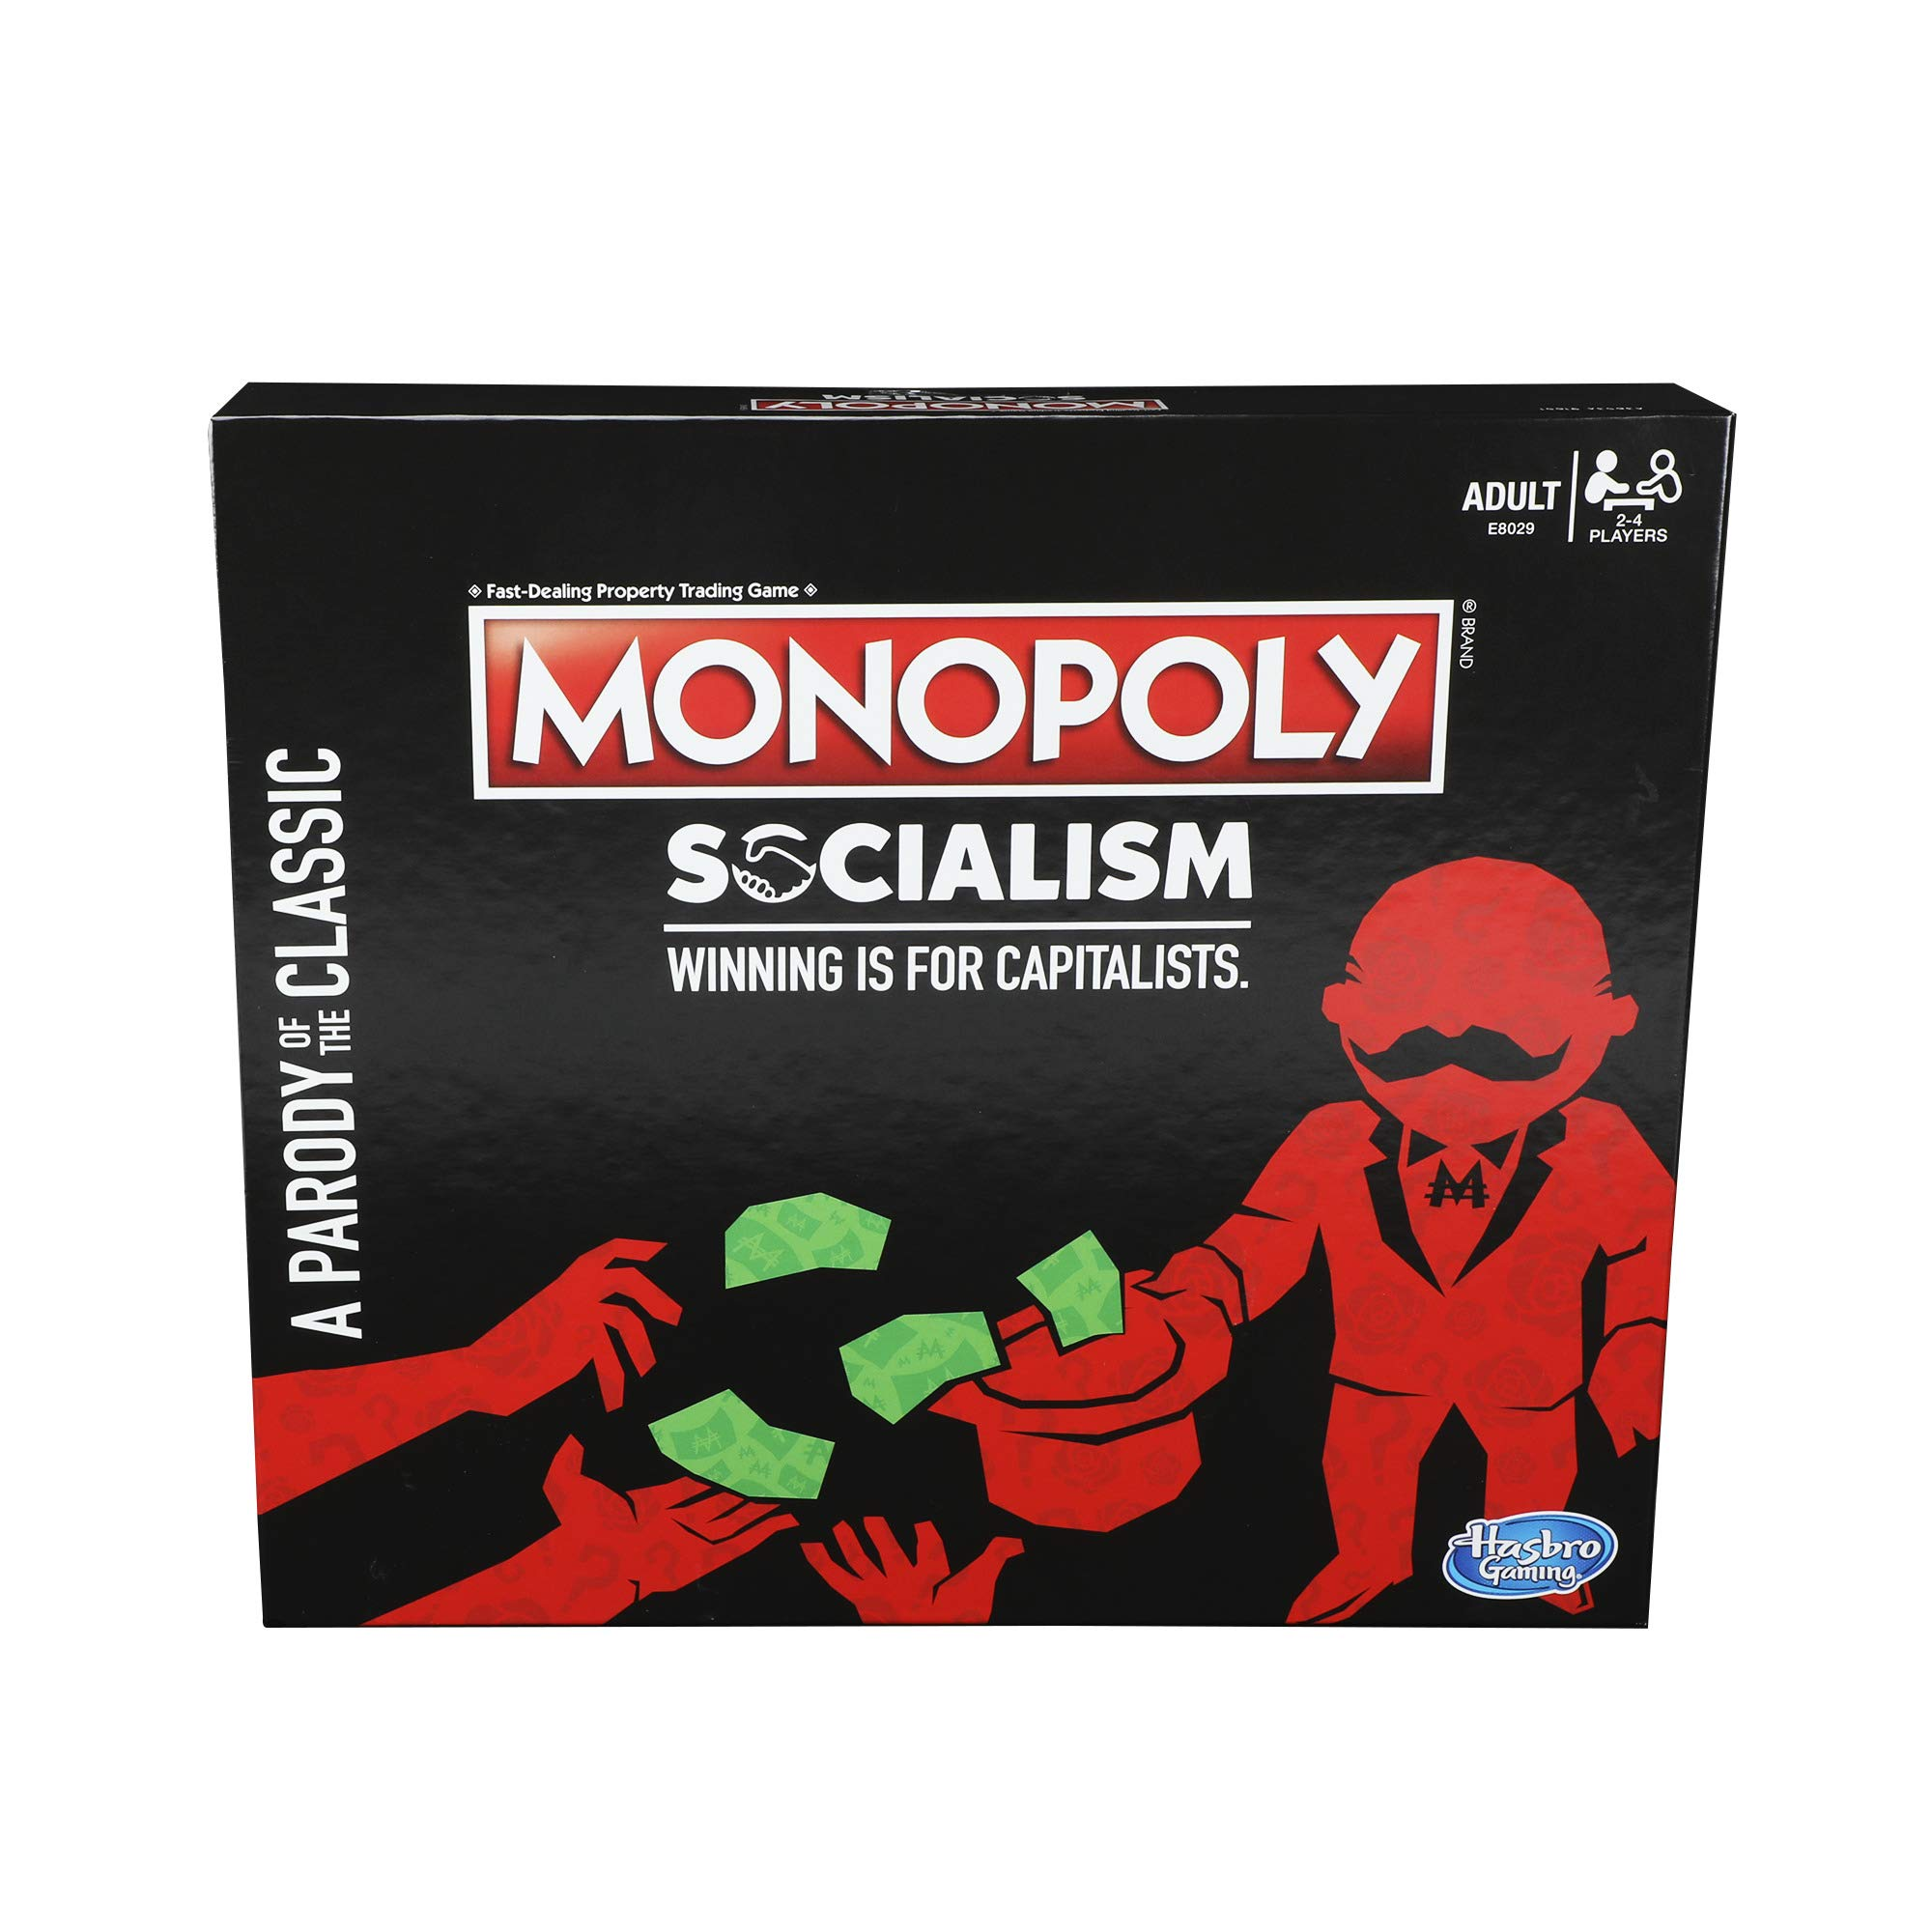 Monopoly Socialism Board Game Parody Adult Party Game by Monopoly